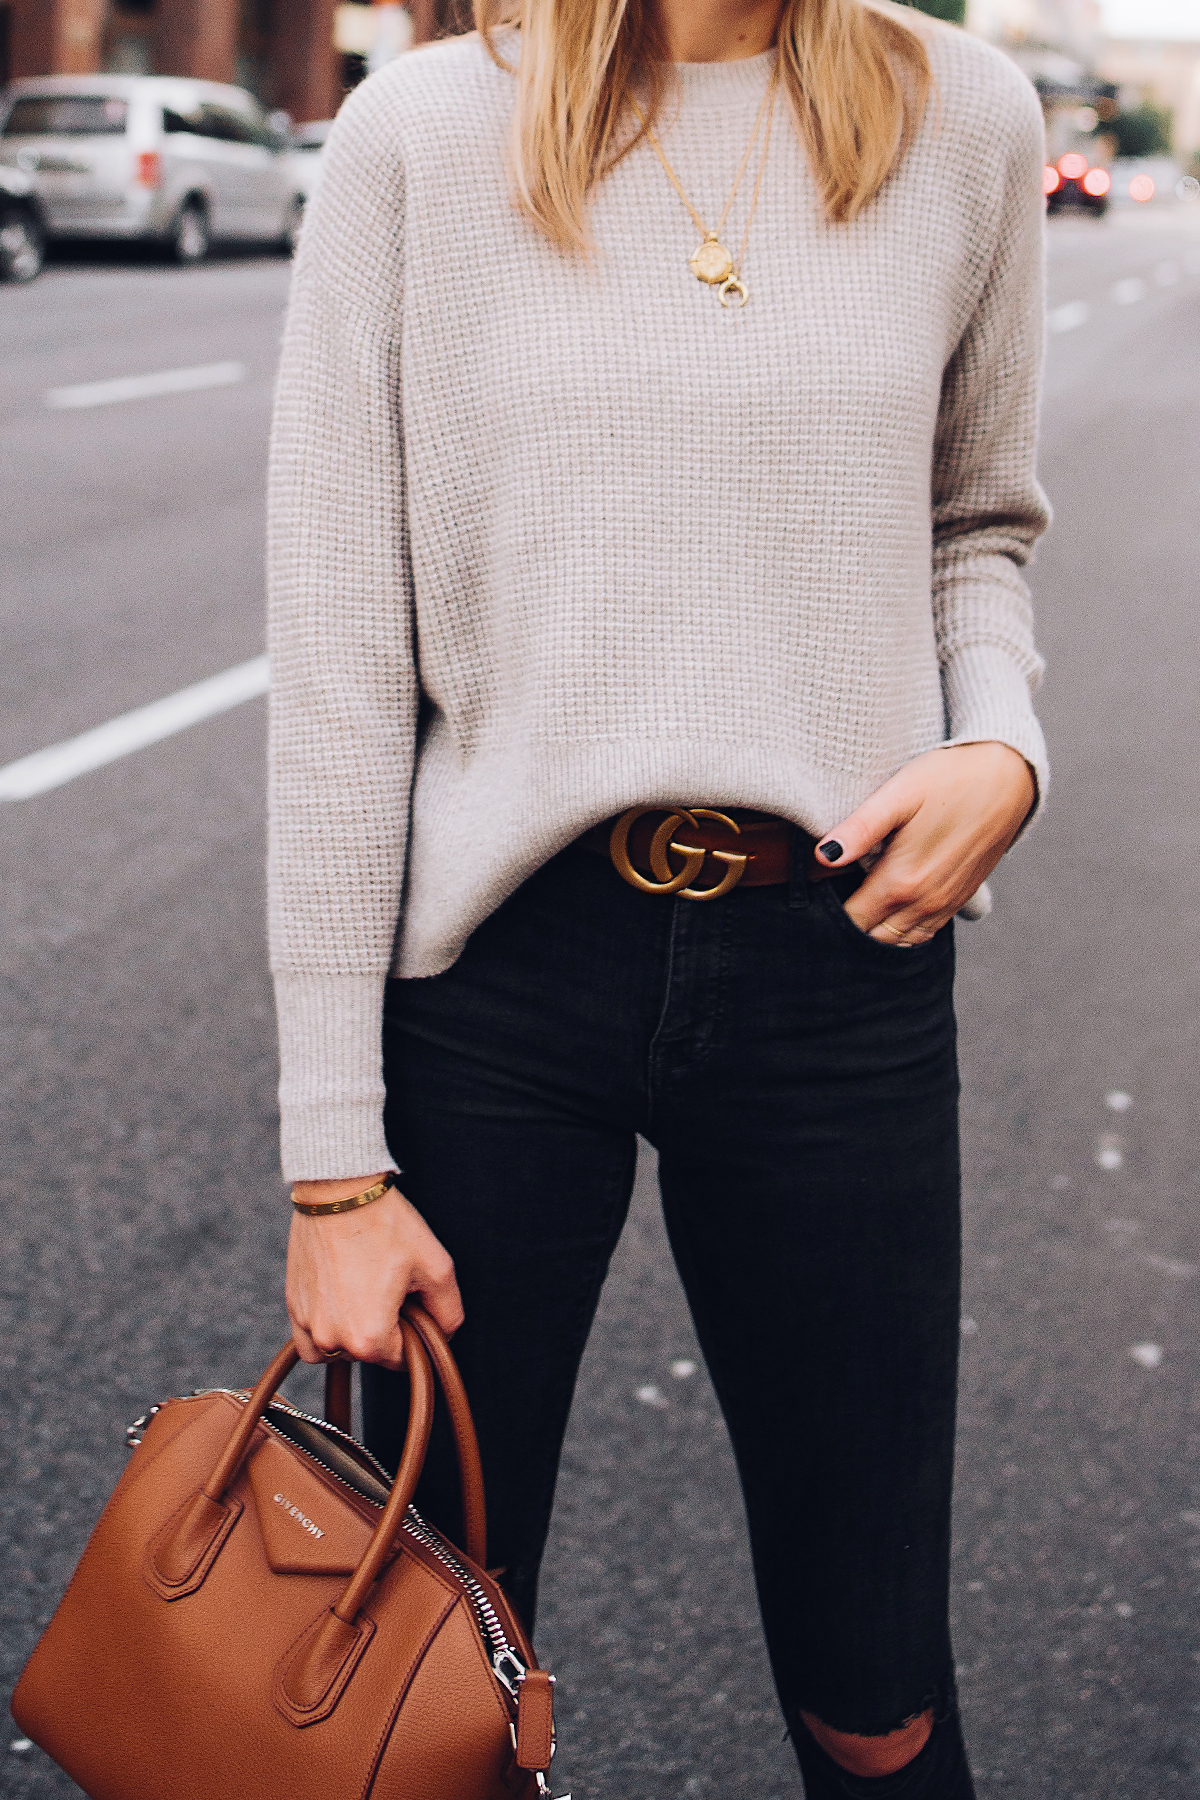 Woman Wearing Everlane Taupe Cashmere Sweater Black Ripped Skinny Jeans Brown Gucci Logo Belt Black Booties Givenchy Anitogona Cognac Handbag Gold Layered Necklaces Fashion Jackson San Diego Fashion Blogger Street Style